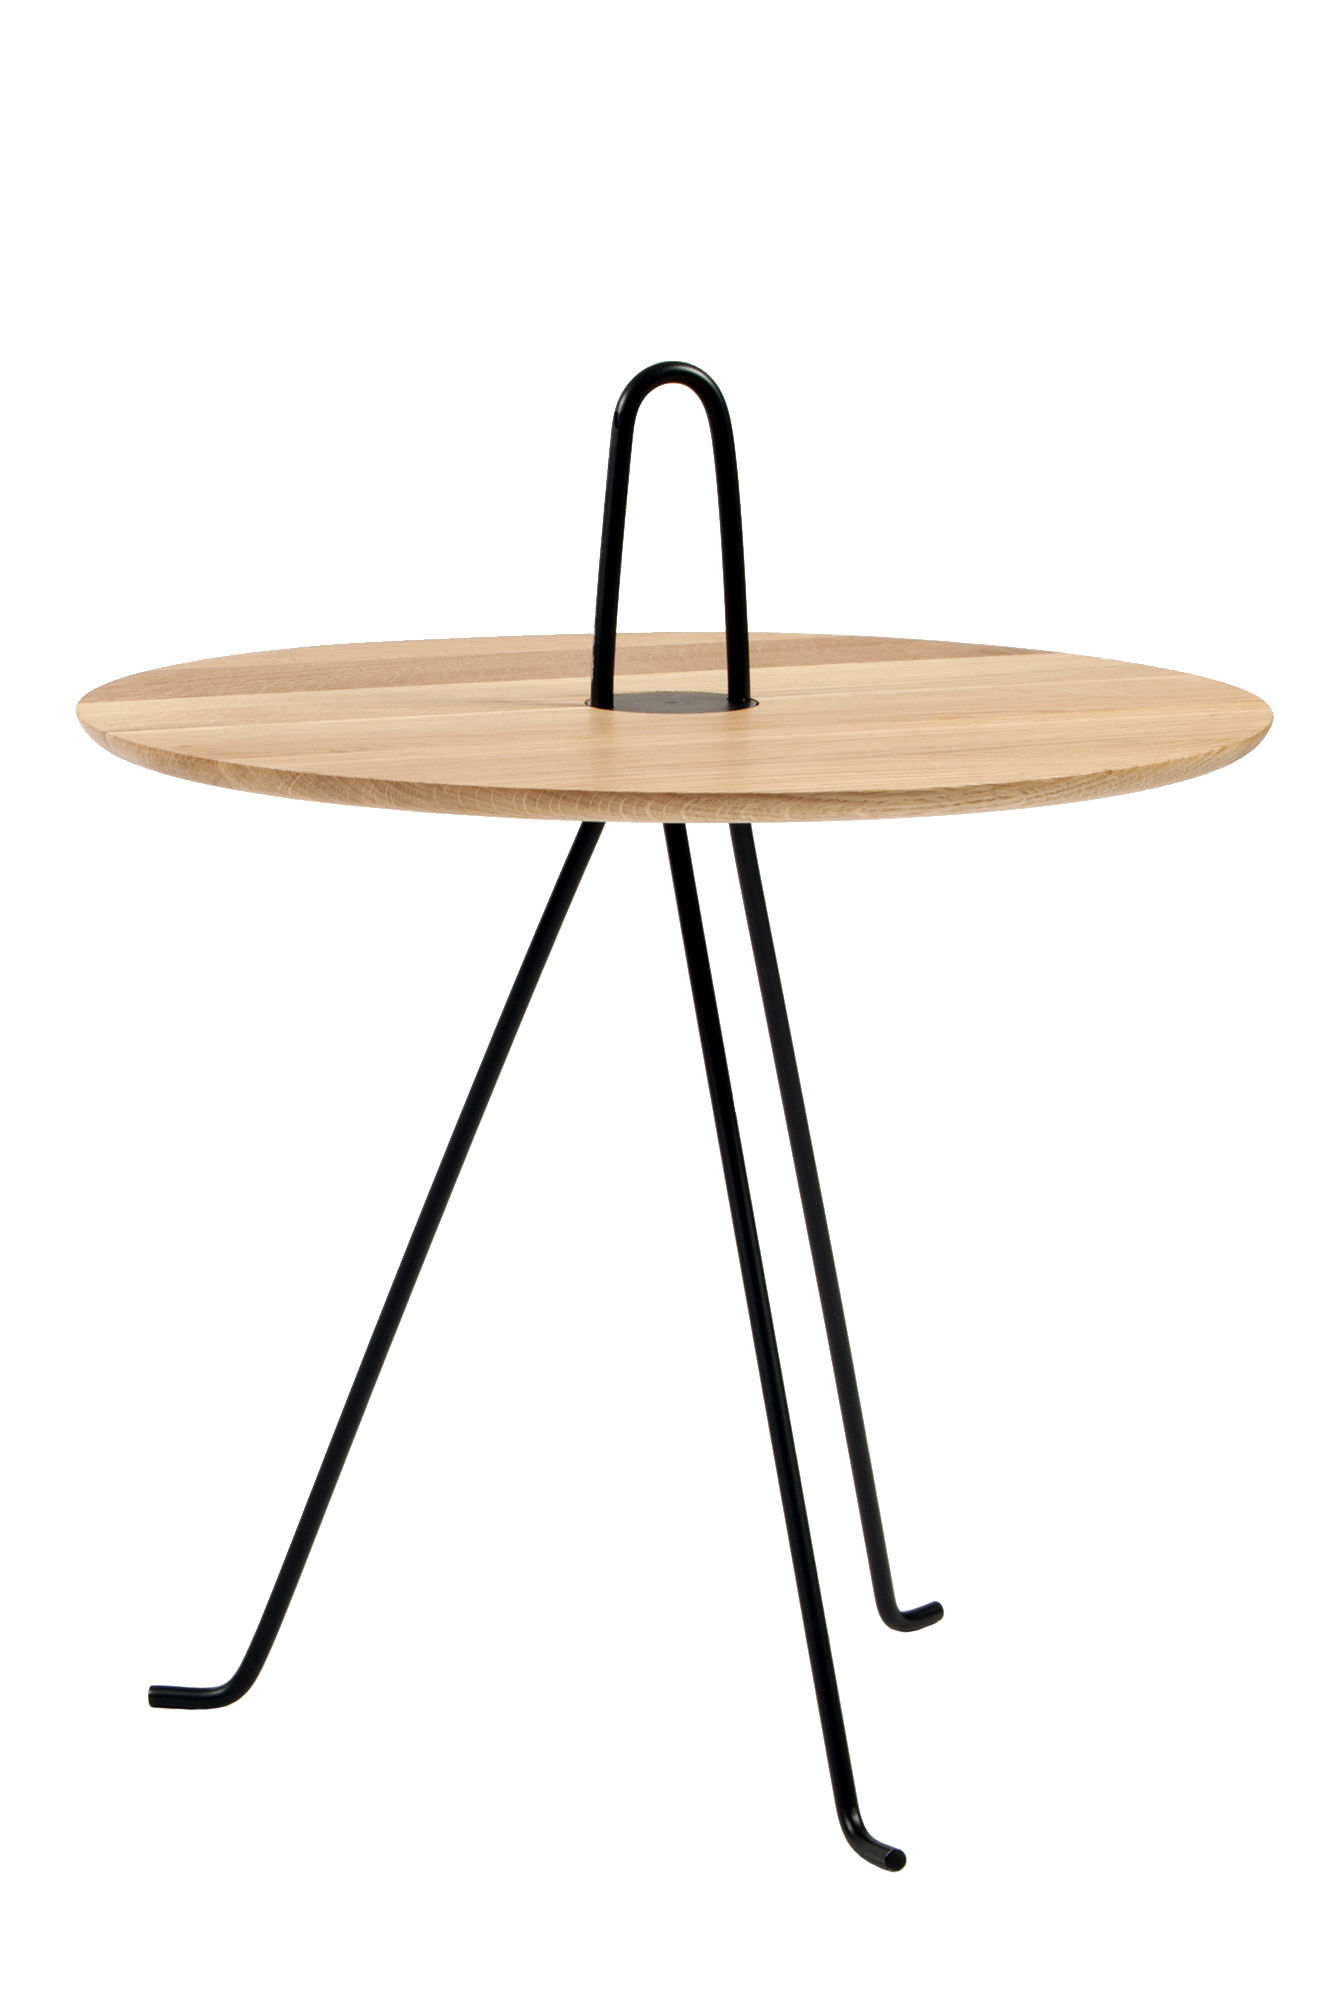 Furniture - Coffee Tables - Tipi End table - / Ø 42 x H 37 cm - Oak by Objekto - Natural oak / Black leg - Painted steel, Solid oak